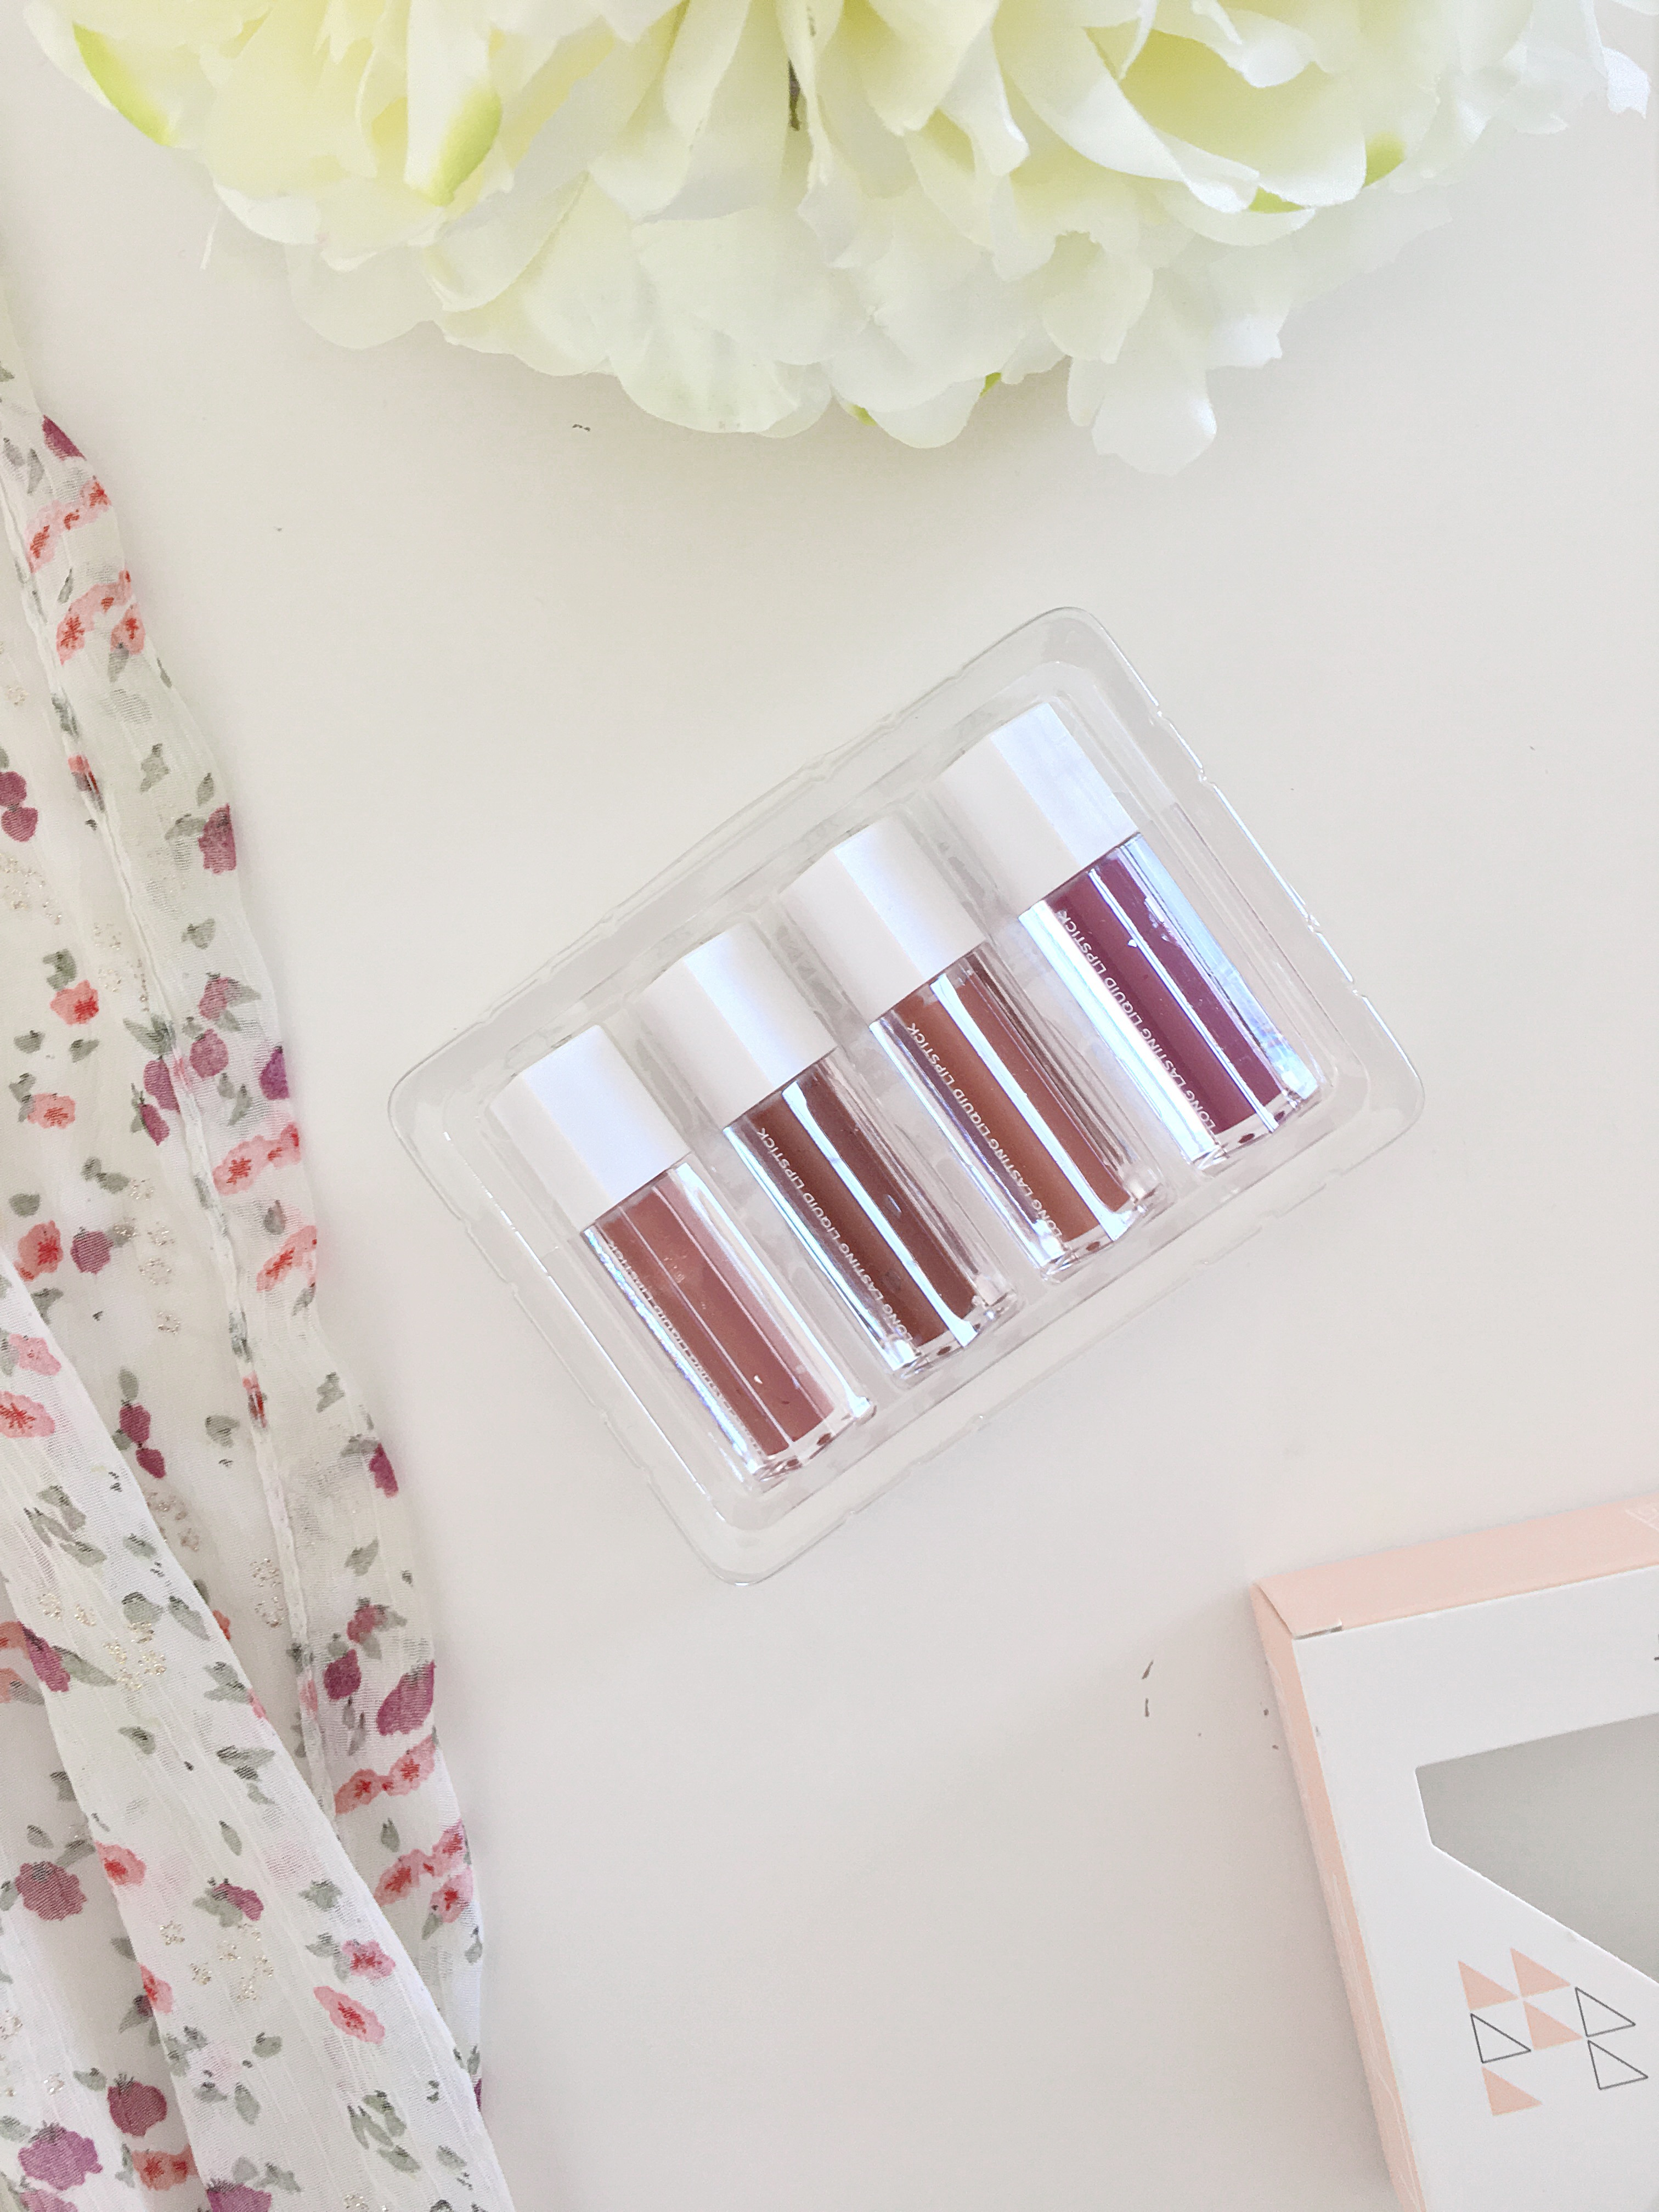 ofra mini liquid lipstick set ulta